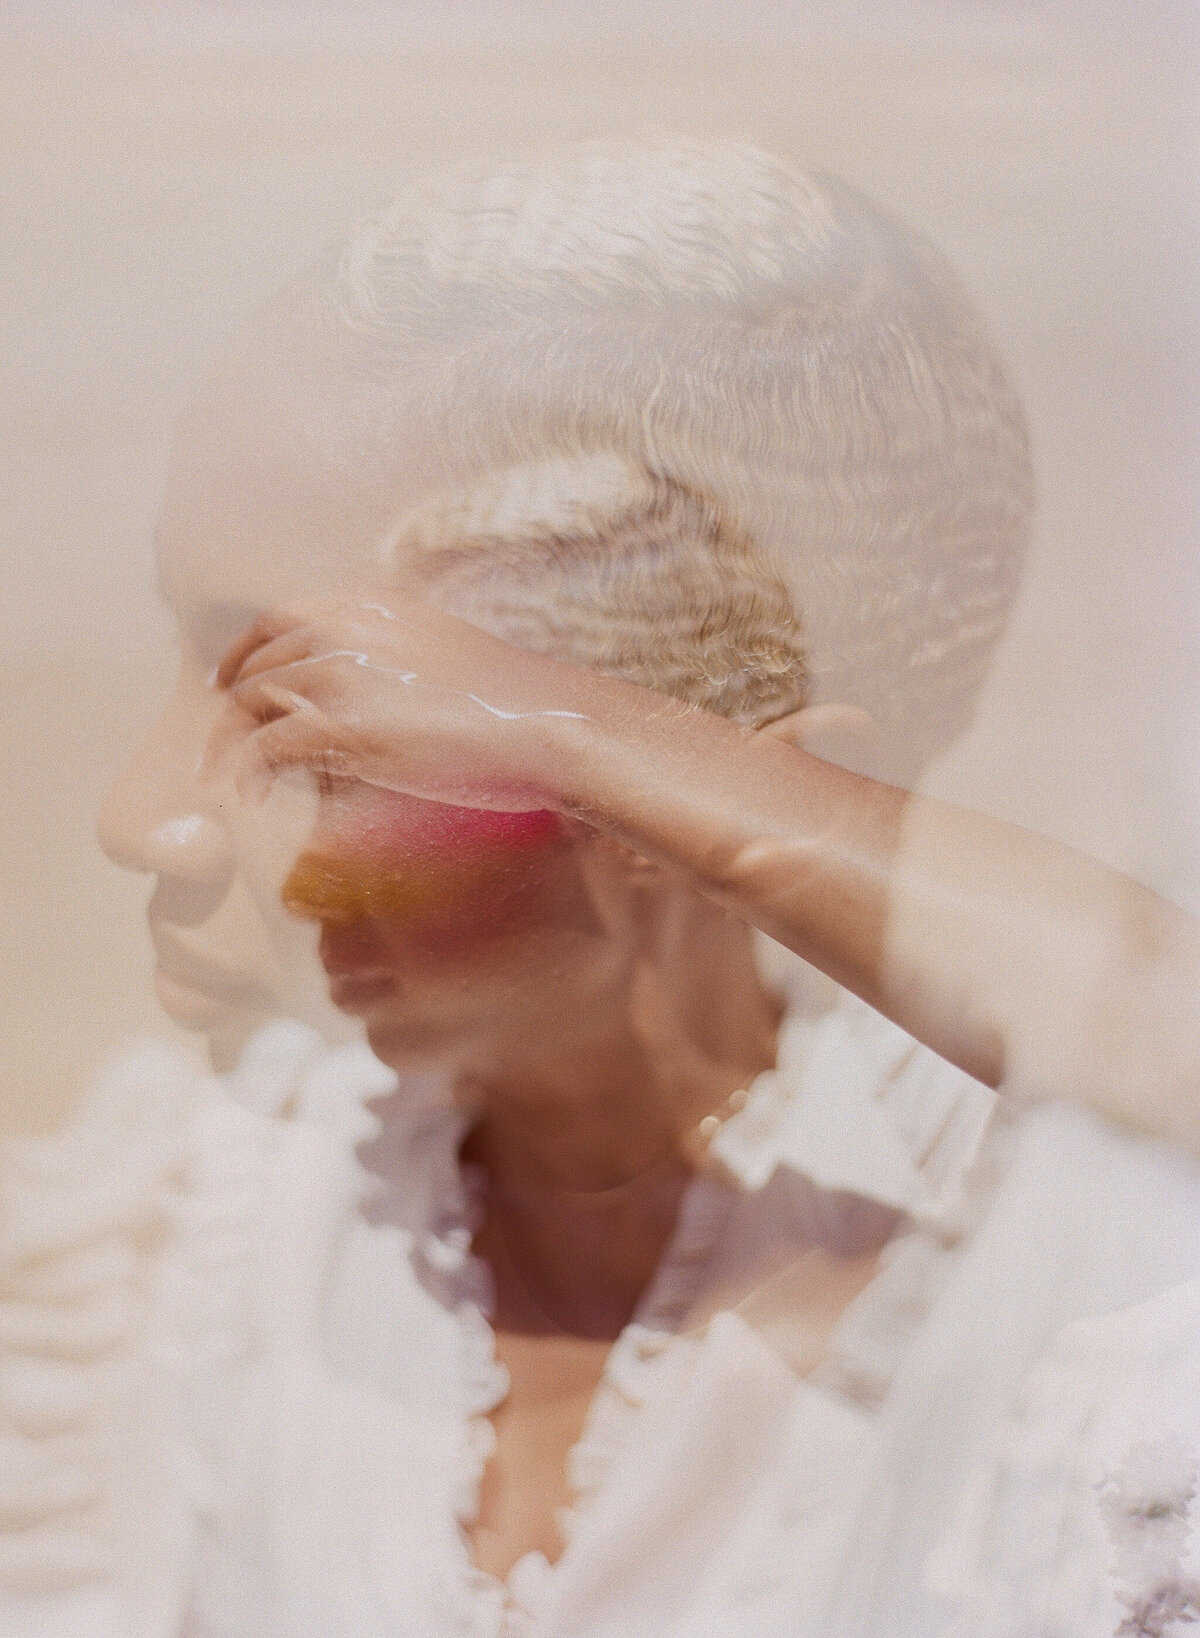 Double exposure film image of beautiful black woman in white dress